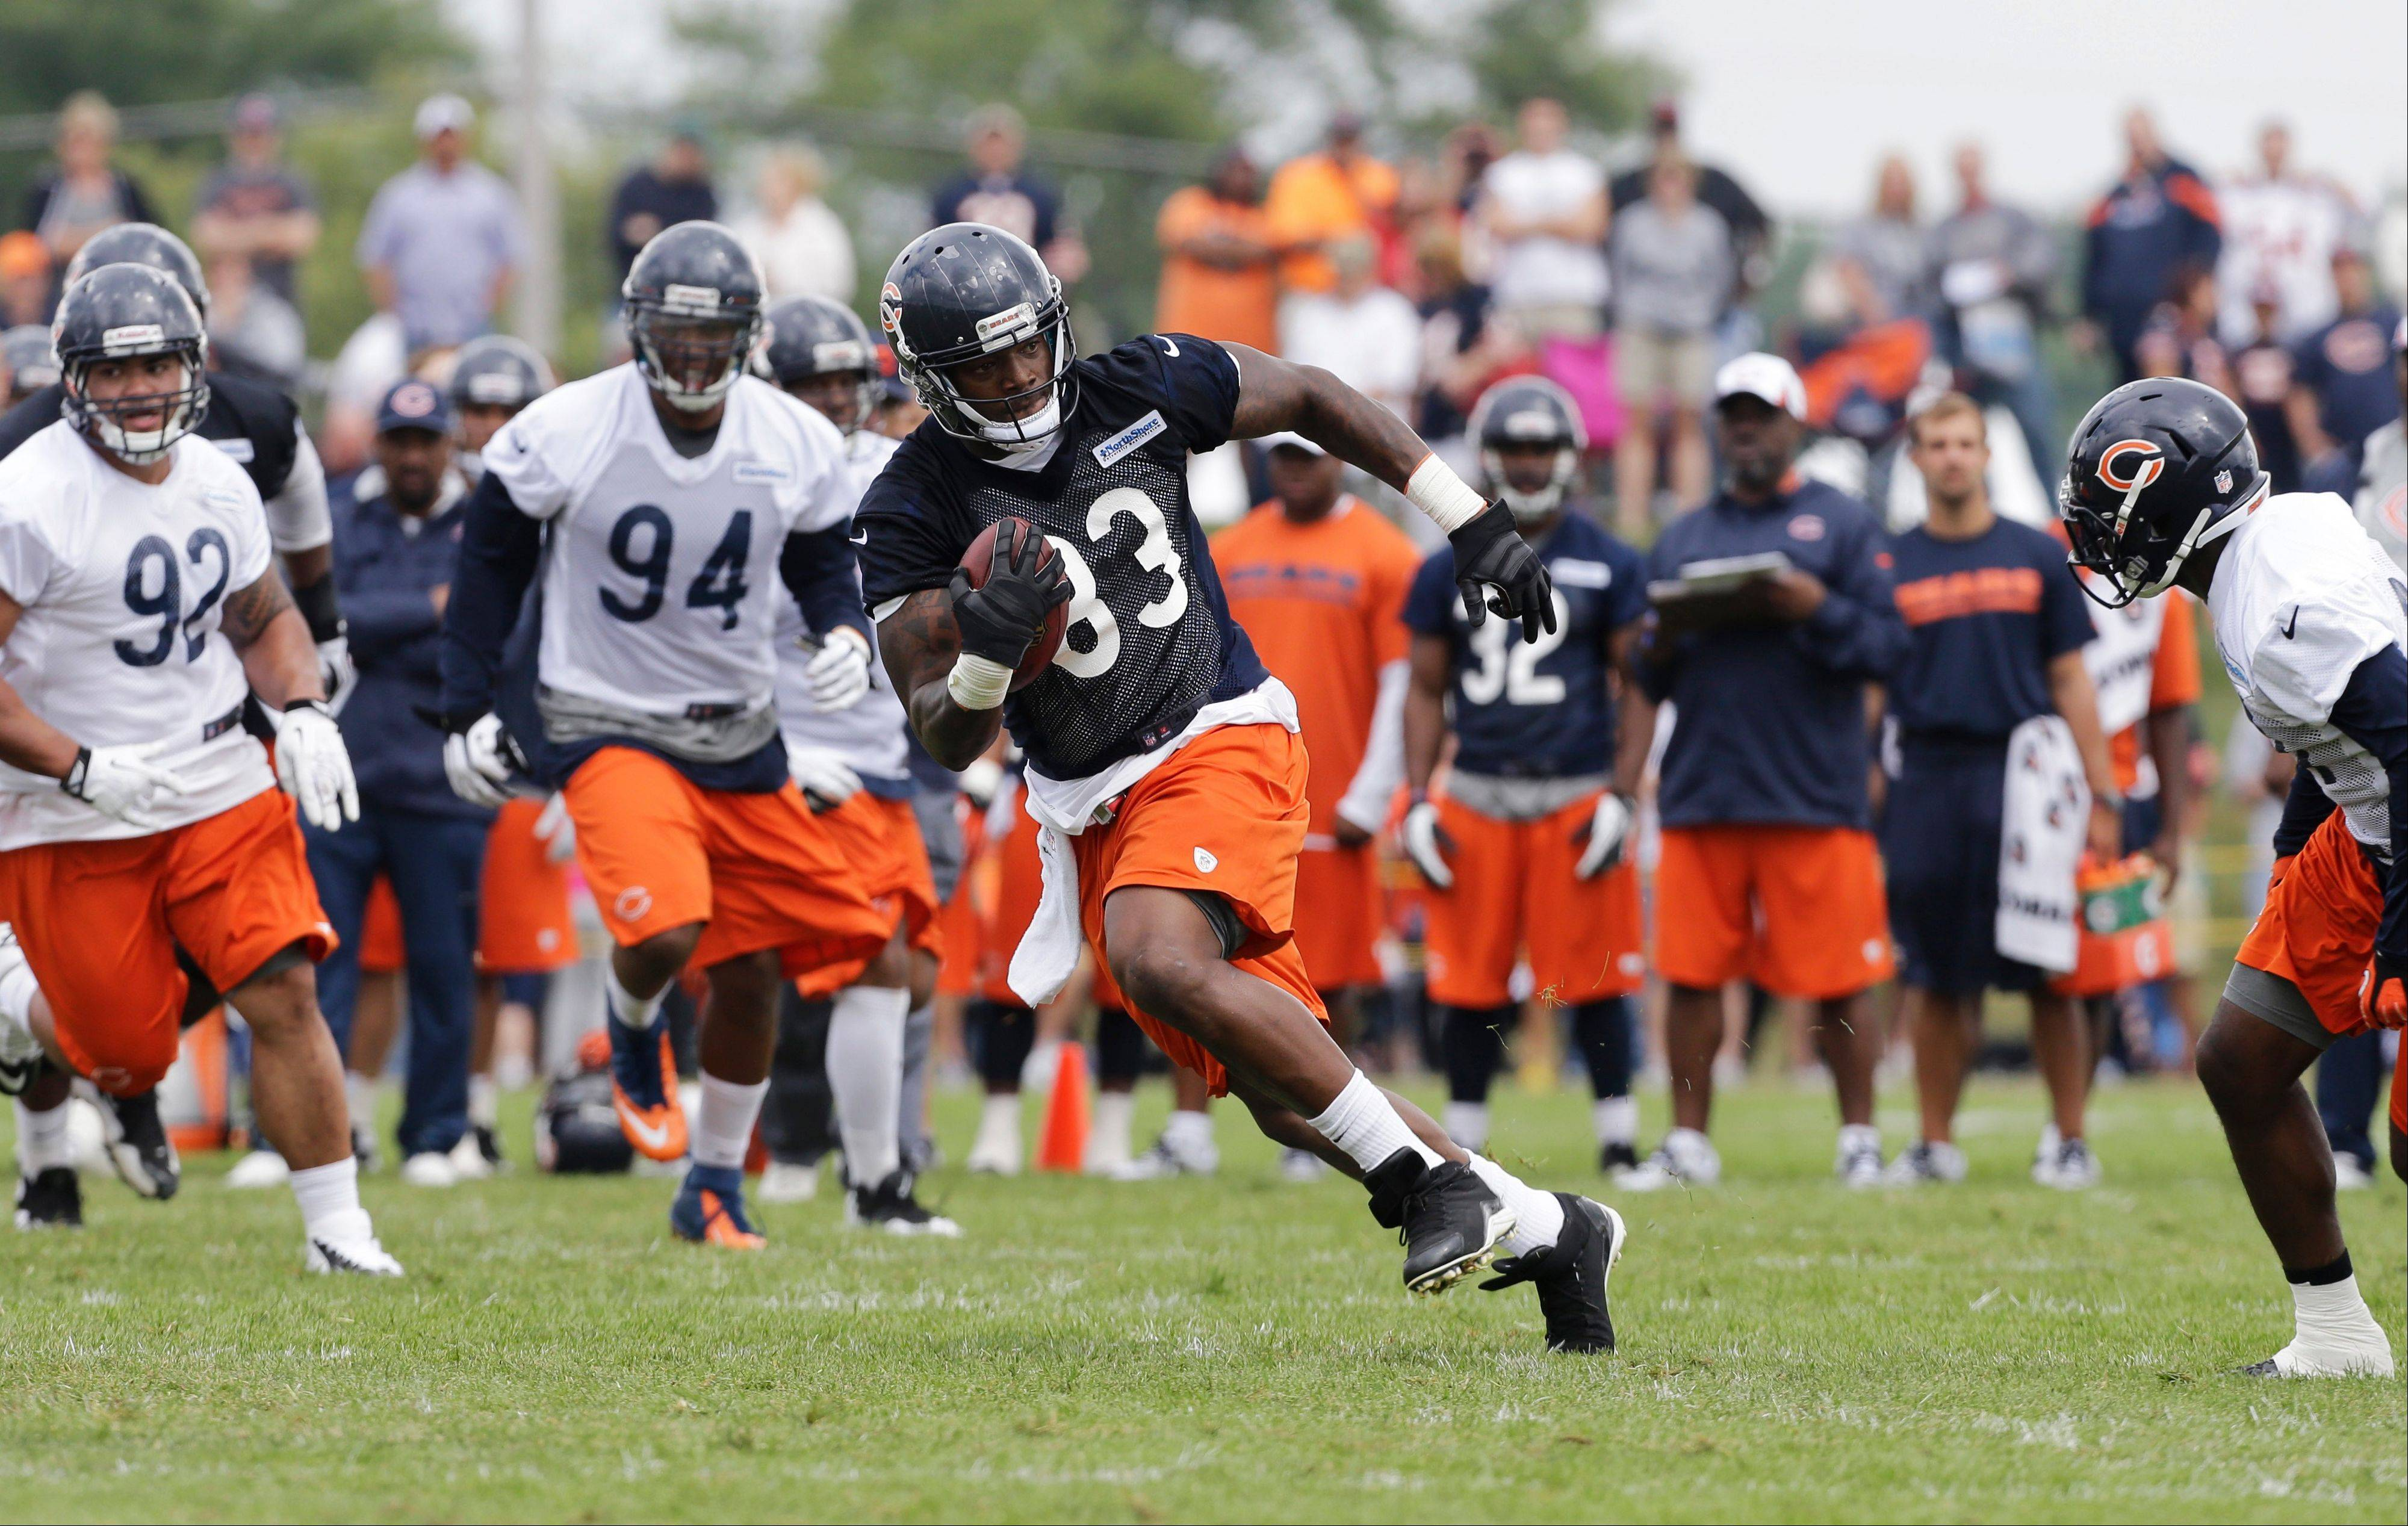 Chicago Bears tight end Martellus Bennett (83) runs with a ball during NFL football training camp Saturday, July 27, 2013, at Olivet Nazarene University in Bourbonnais, Ill.